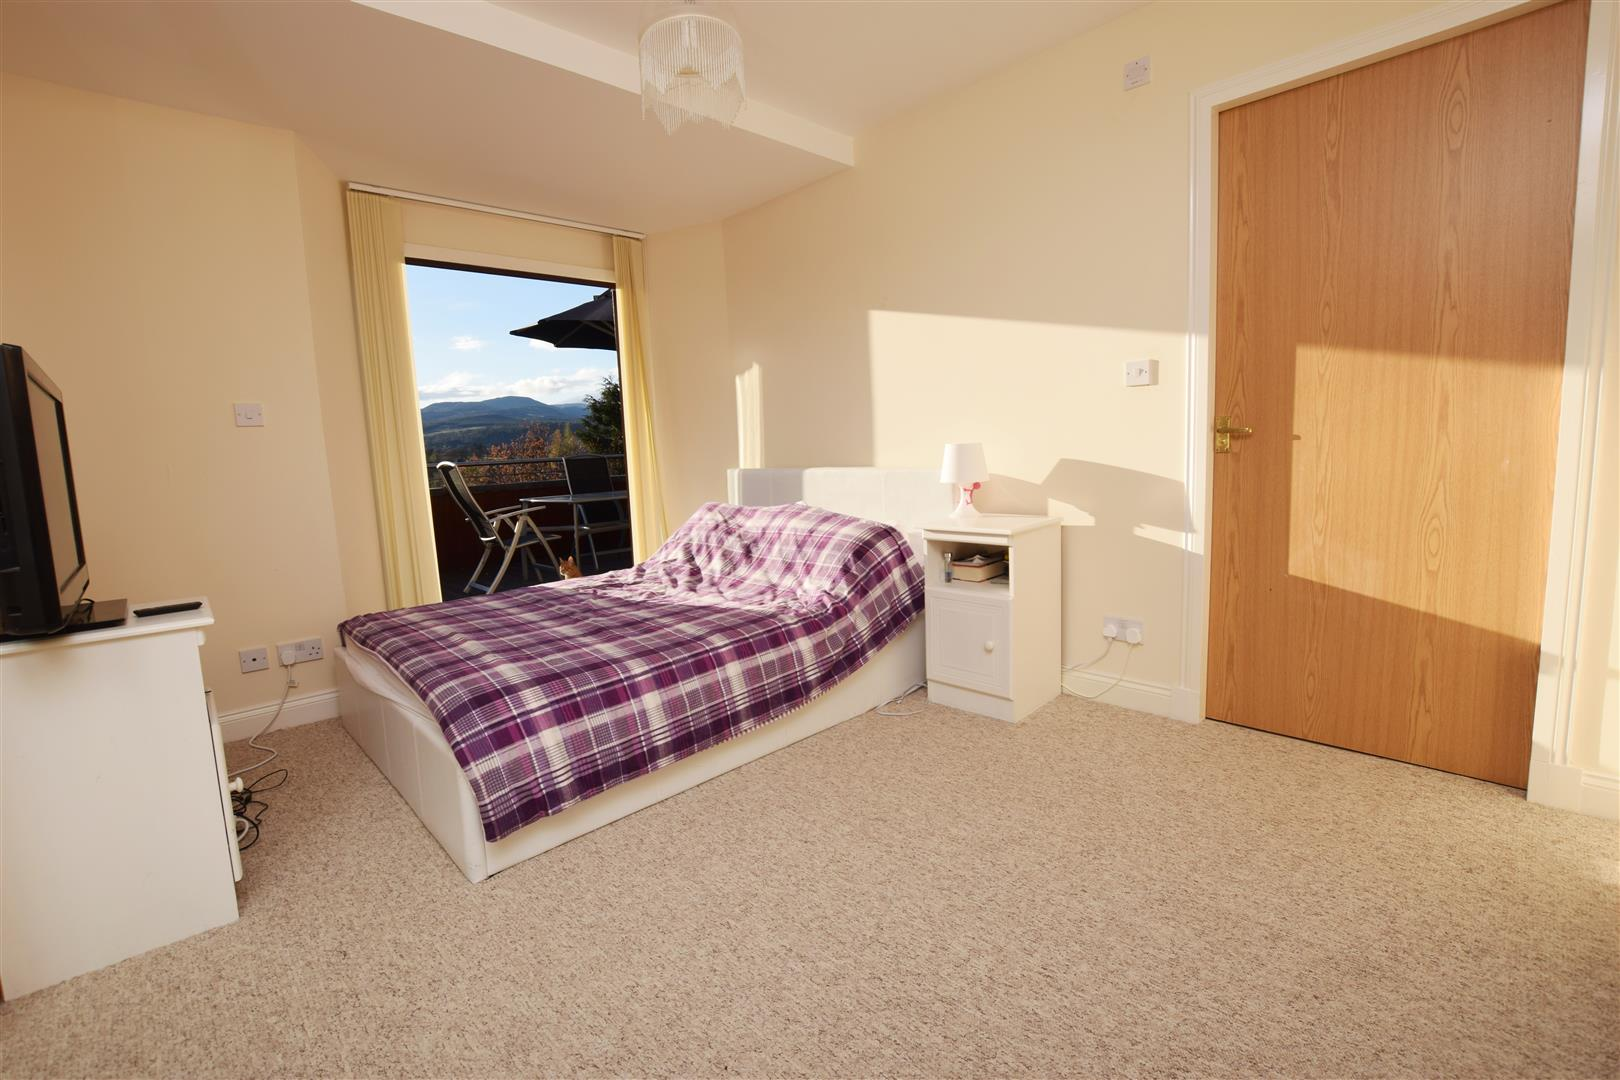 Flat 6, St Ninians Court, Heathcote Road, CRIEFF, PH7 4AS, UK